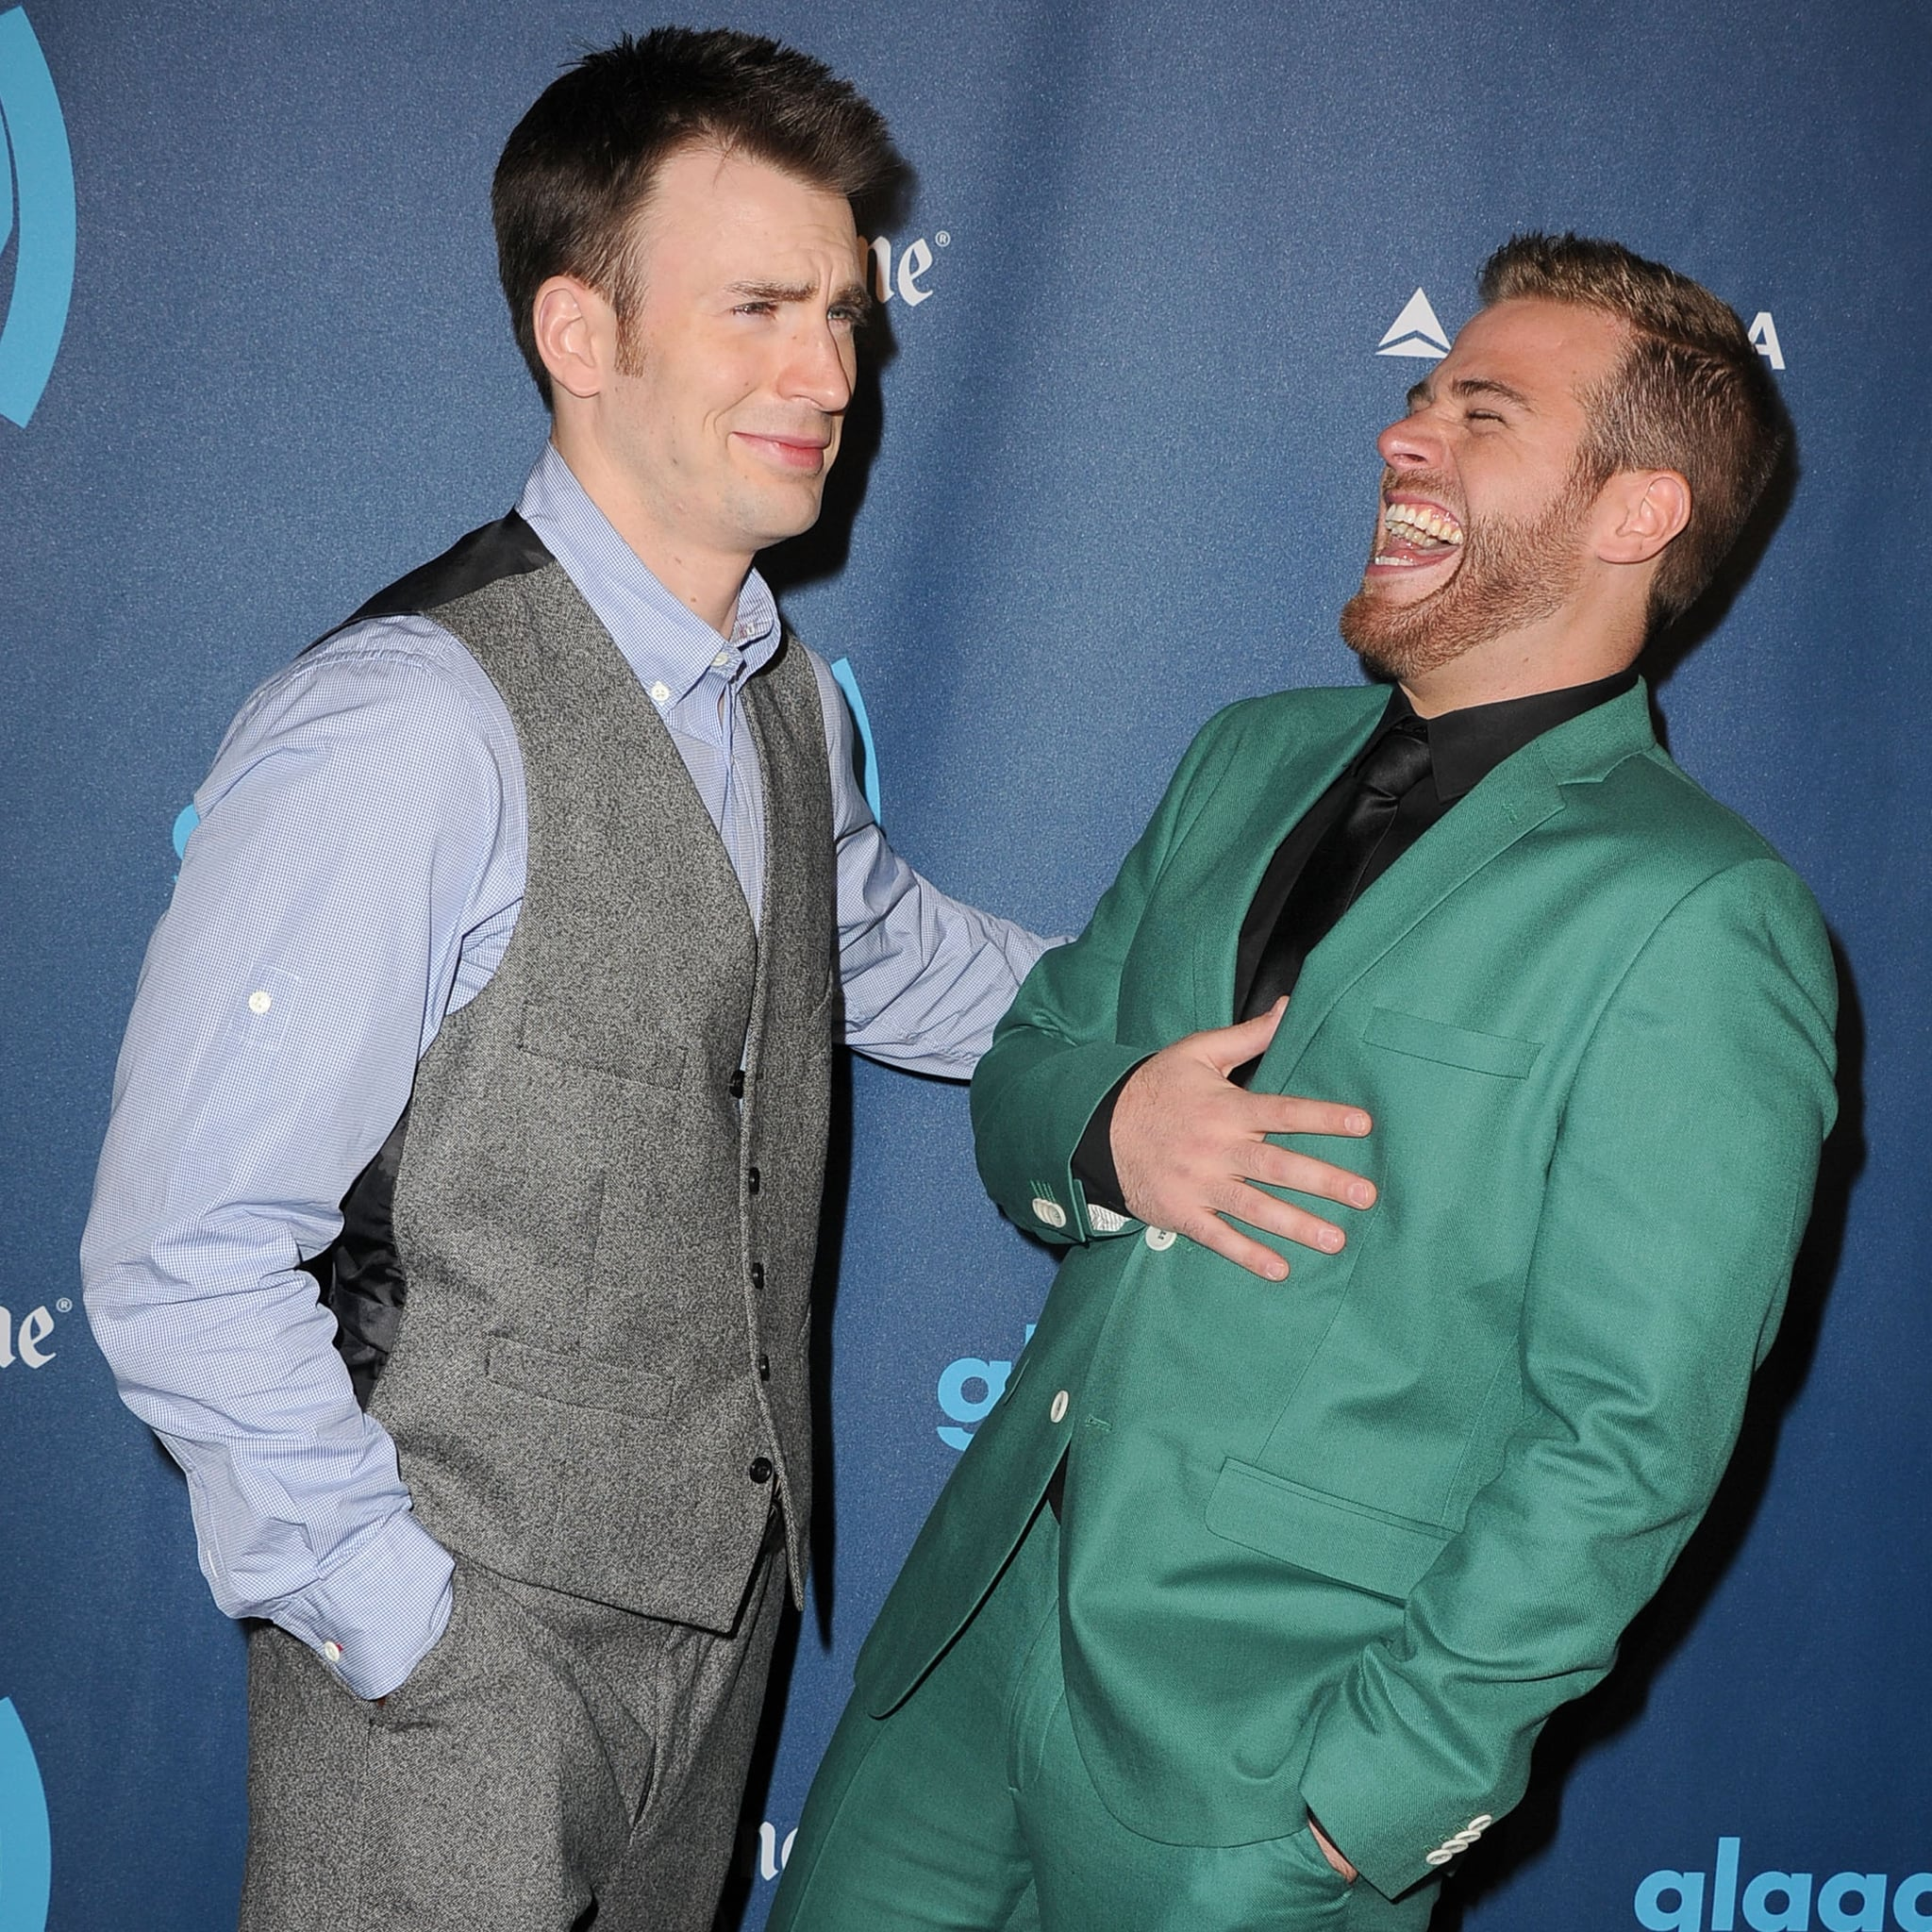 Pictures of Chris Evans With His Brother Scott | POPSUGAR Celebrity